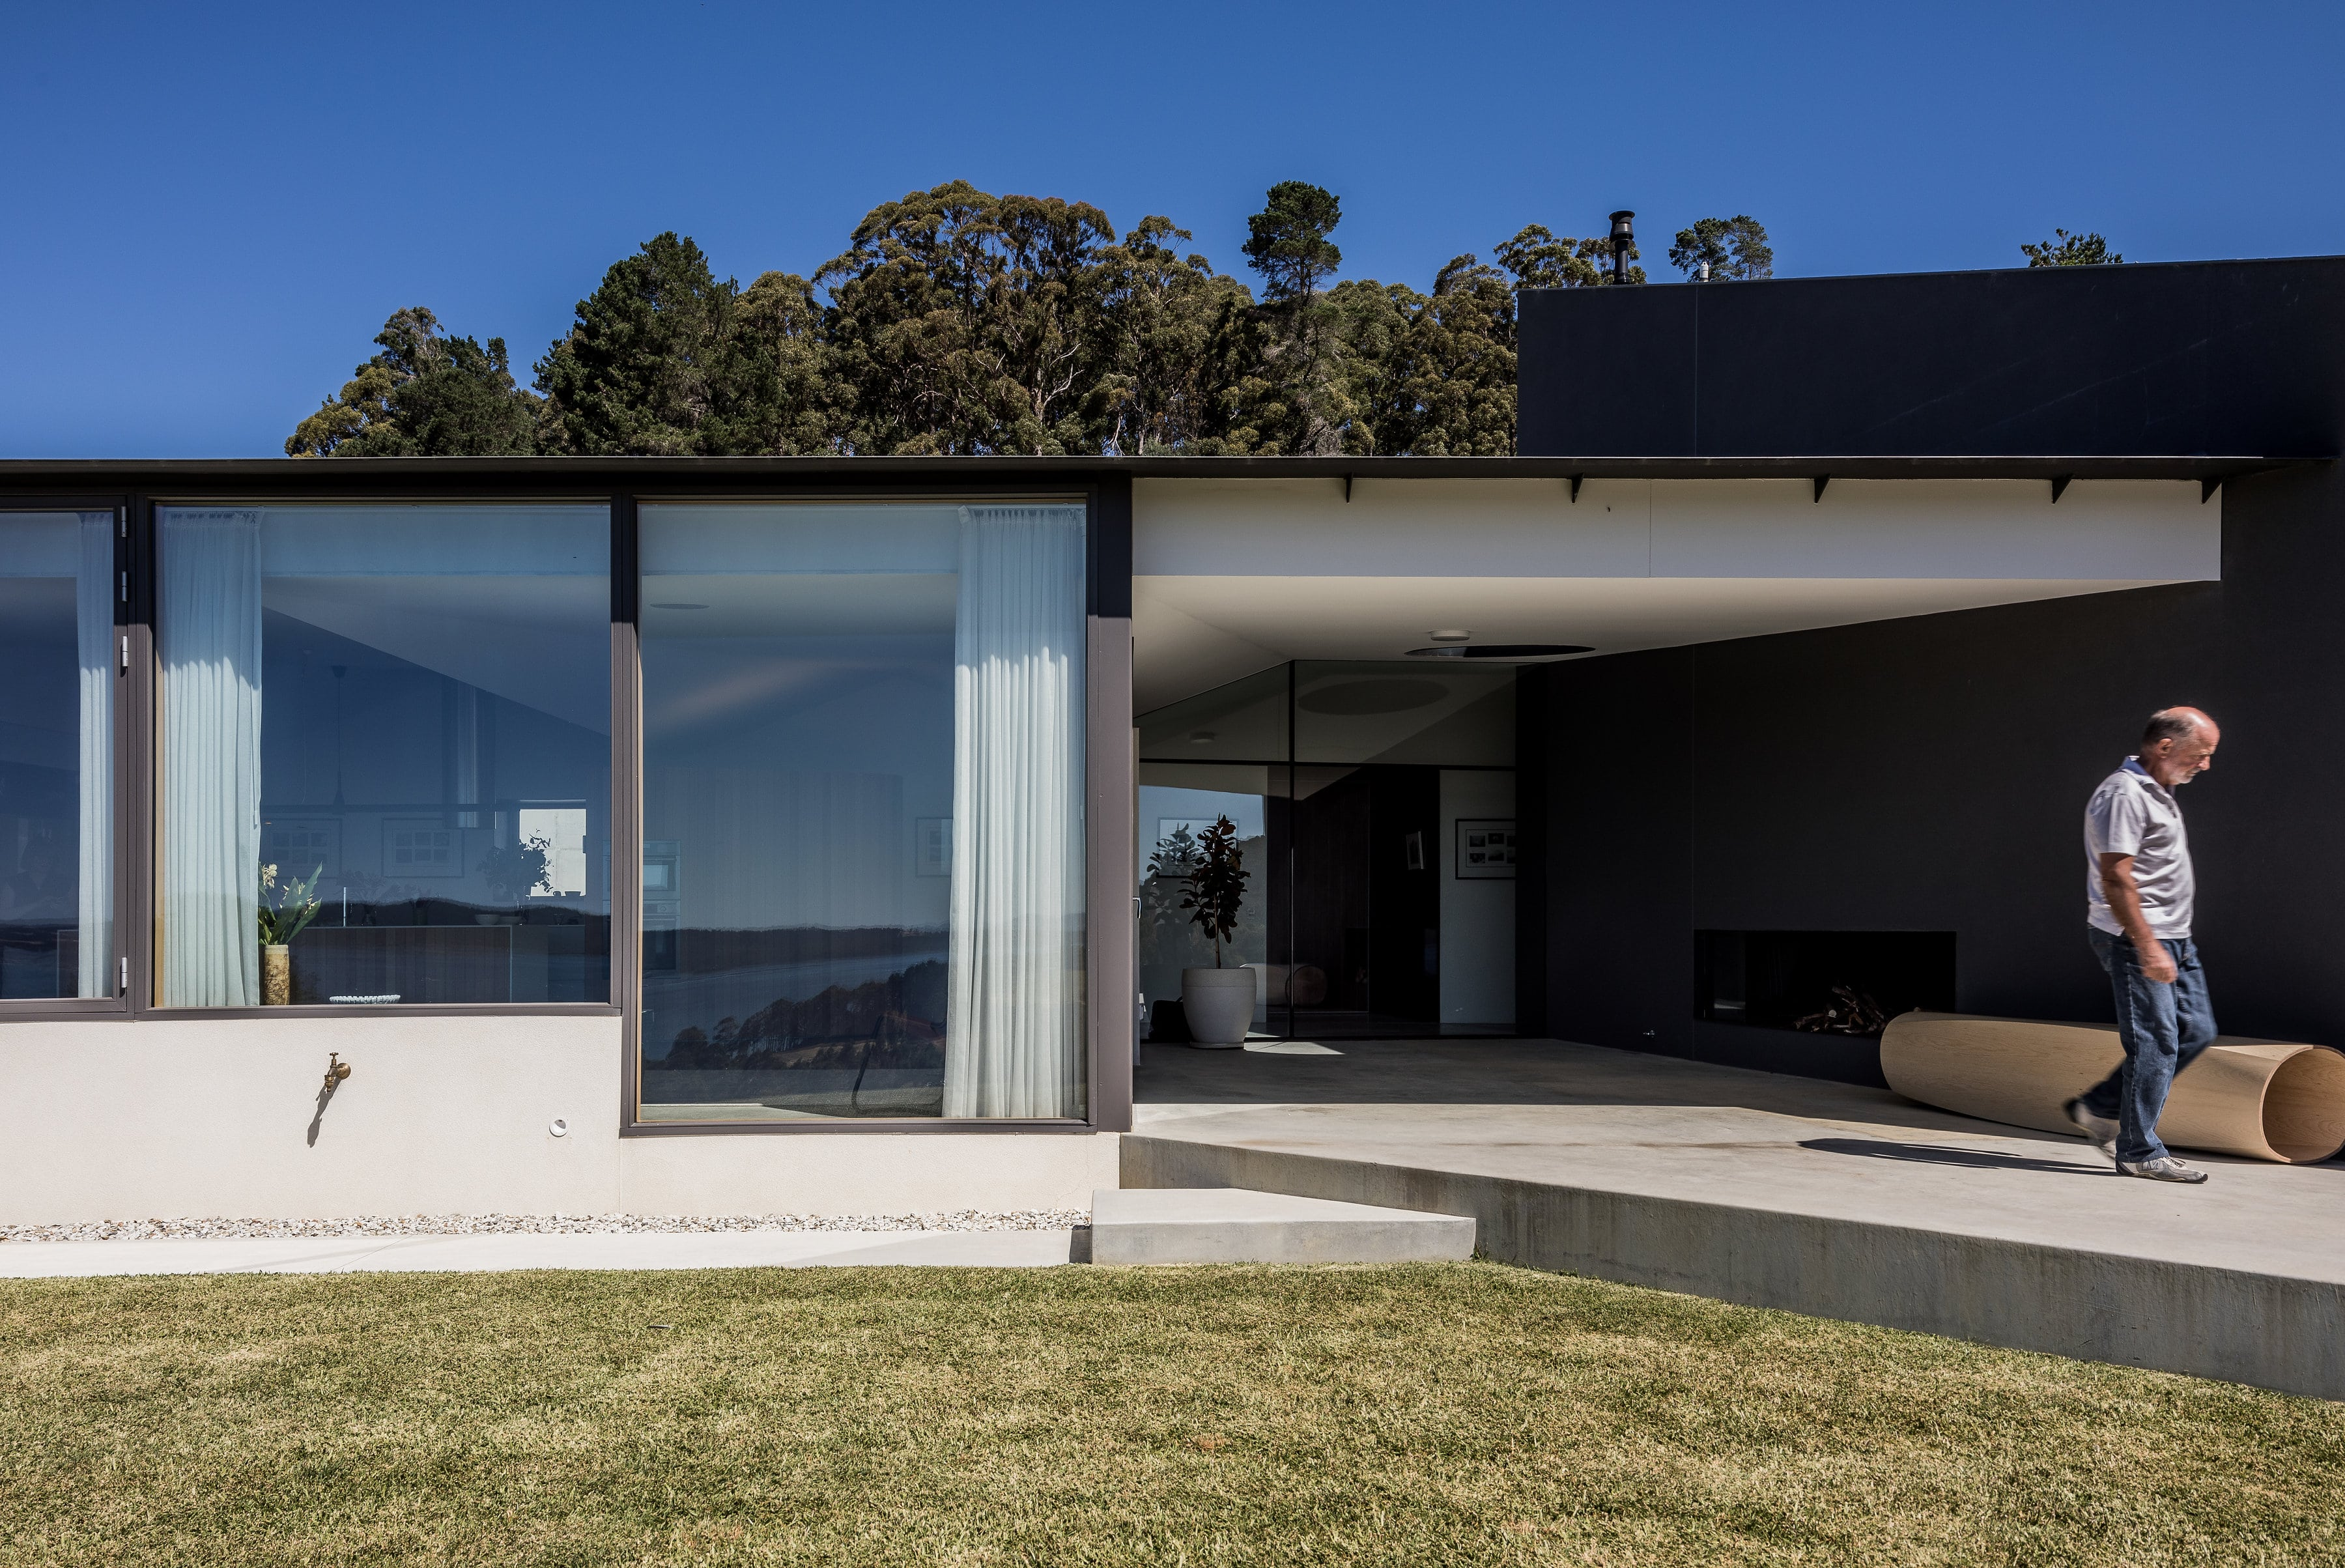 Designed As A Green Change Relocation For The Client (from Sydney), Sunnybanks House Delivers More Than The